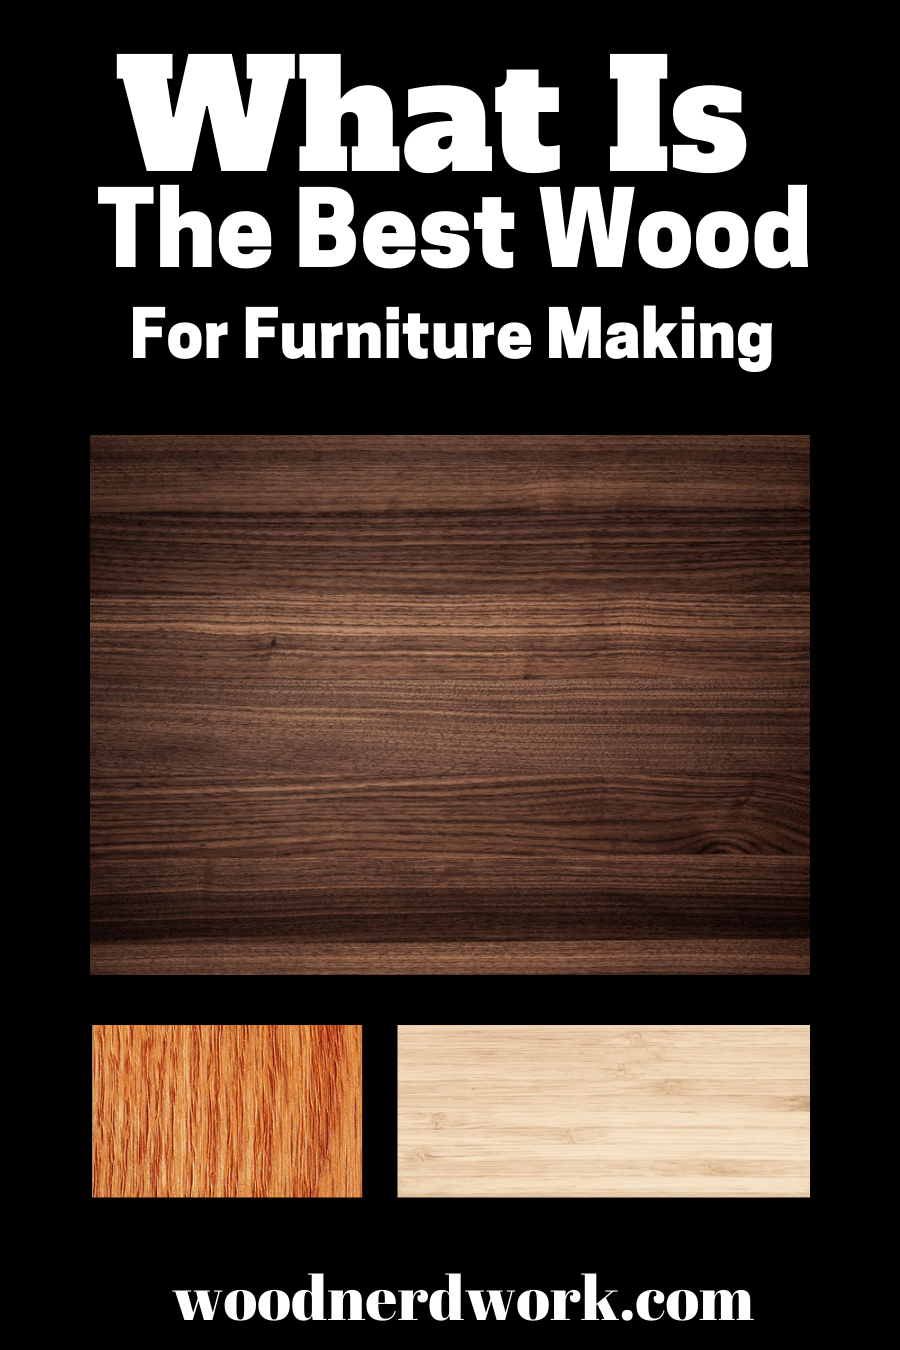 Types Of Wood For Furniture And Woodworking Wood Working For Beginners Cool Woodworking Projects Outdoor Wood Projects